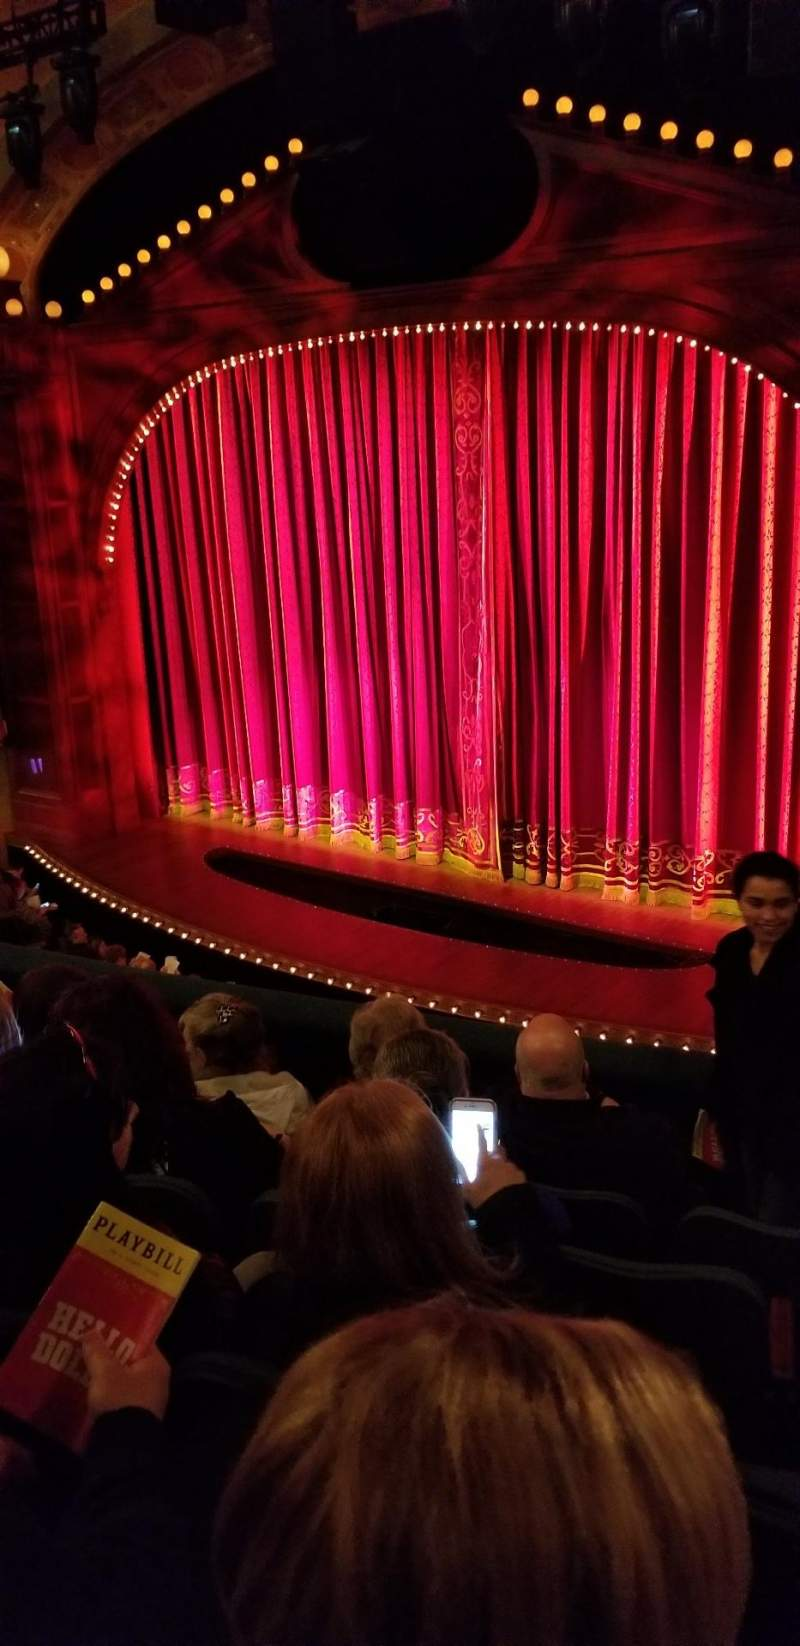 Seating view for Shubert Theatre Section Mezzanine R Row E Seat 18